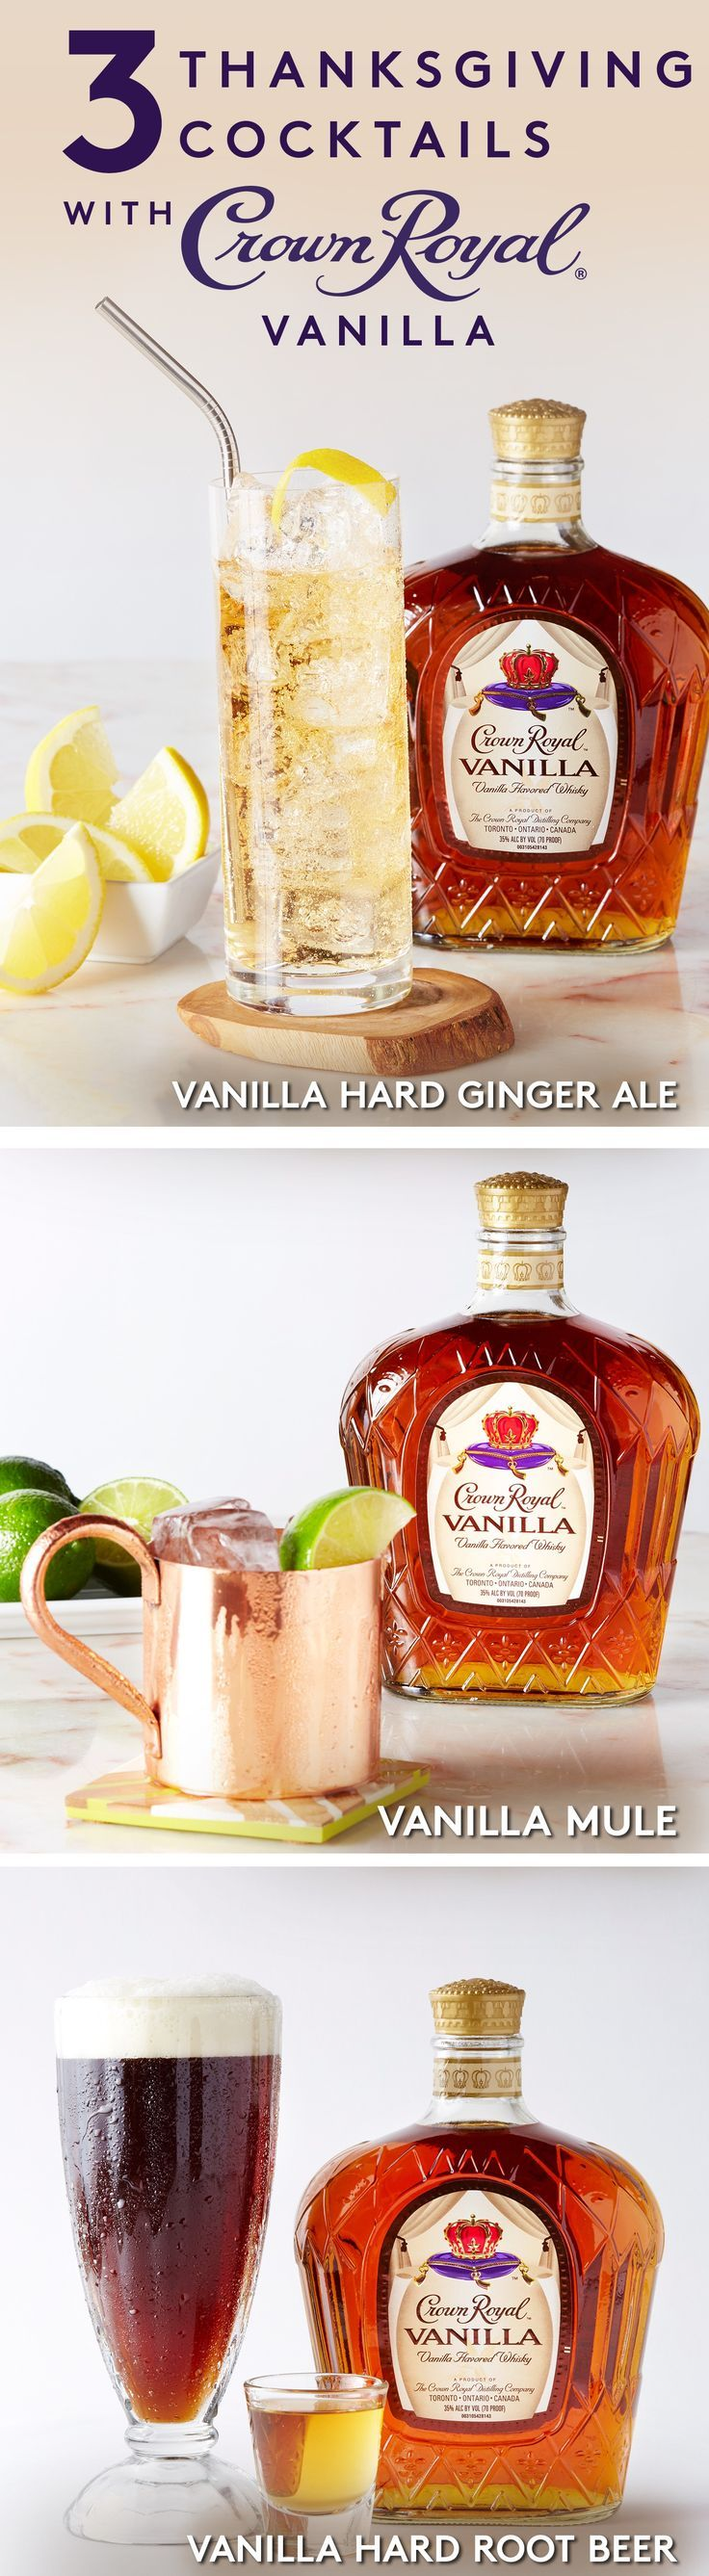 For a simple Thanksgiving recipe, fix a Vanilla Hard Ginger Ale. Add 1.5 oz Crown Royal Vanilla to an ice-filled highball glass. Add 4 oz ginger ale and stir. For a twist on a mule, combine 1.5 oz of Crown Royal Vanilla, .75 oz lime juice and ice into a shaker - shake and strain. Top with ginger beer, 2 dashes of bitters and garnish with a lime. For an easy classic cocktail, try the Vanilla Hard Root Beer. Add 1.5 oz Crown Royal Vanilla Whisky to an ice-filled glass, top with root beer and…